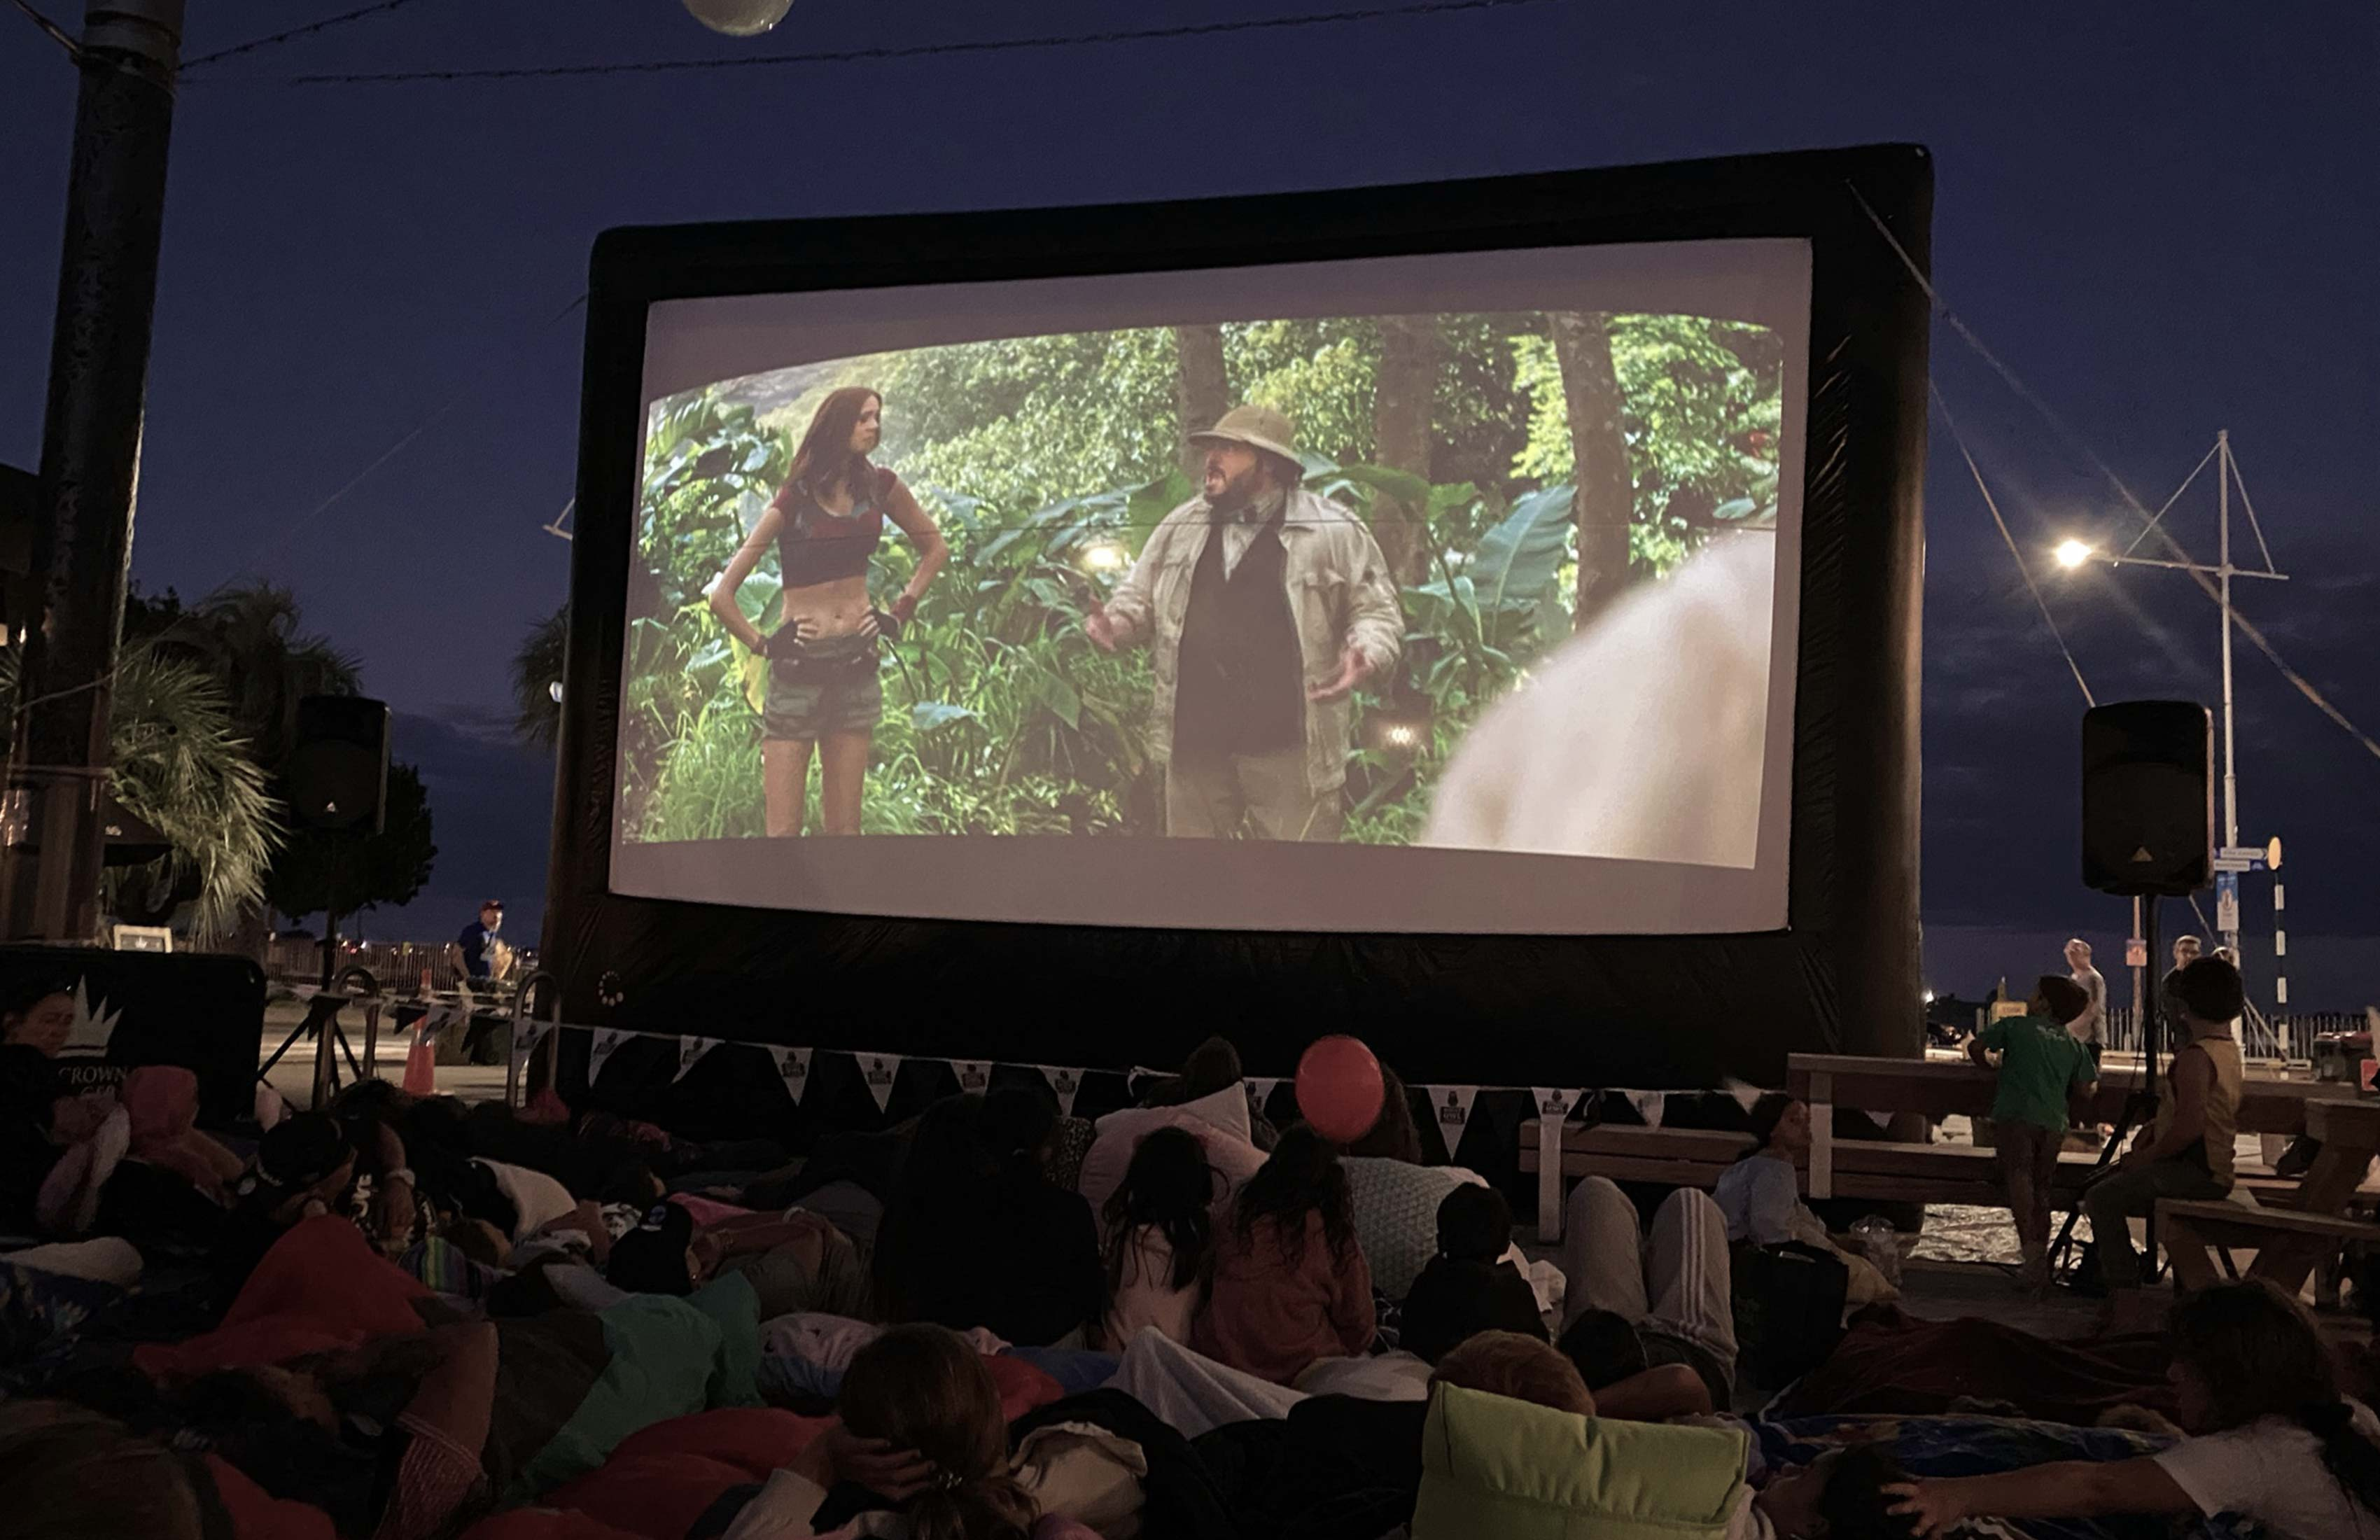 Outdoor Cinema takes place on Warf Street